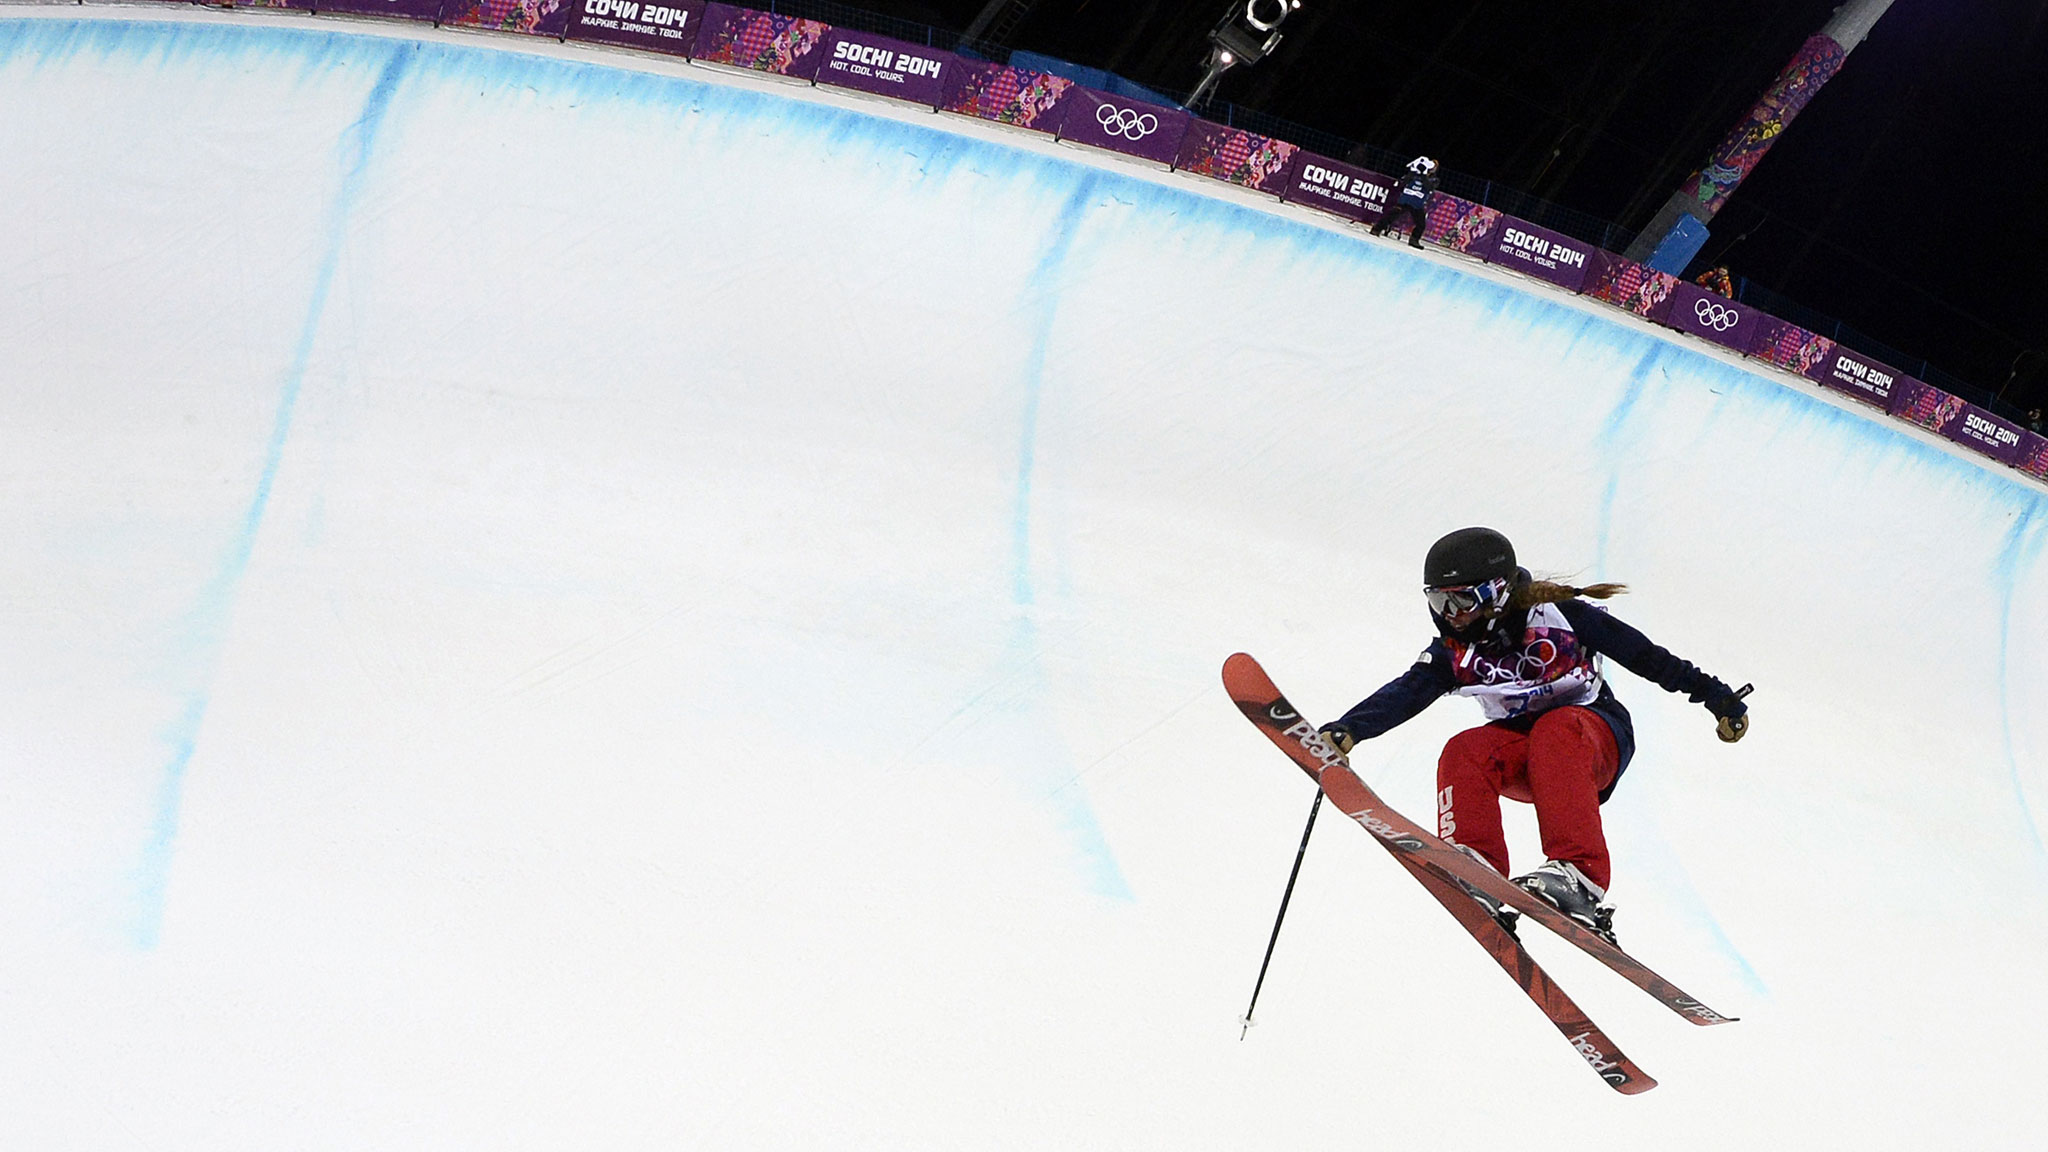 American Maddie Bowman clinched gold in the first women's ski halfpipe at the Olympics.